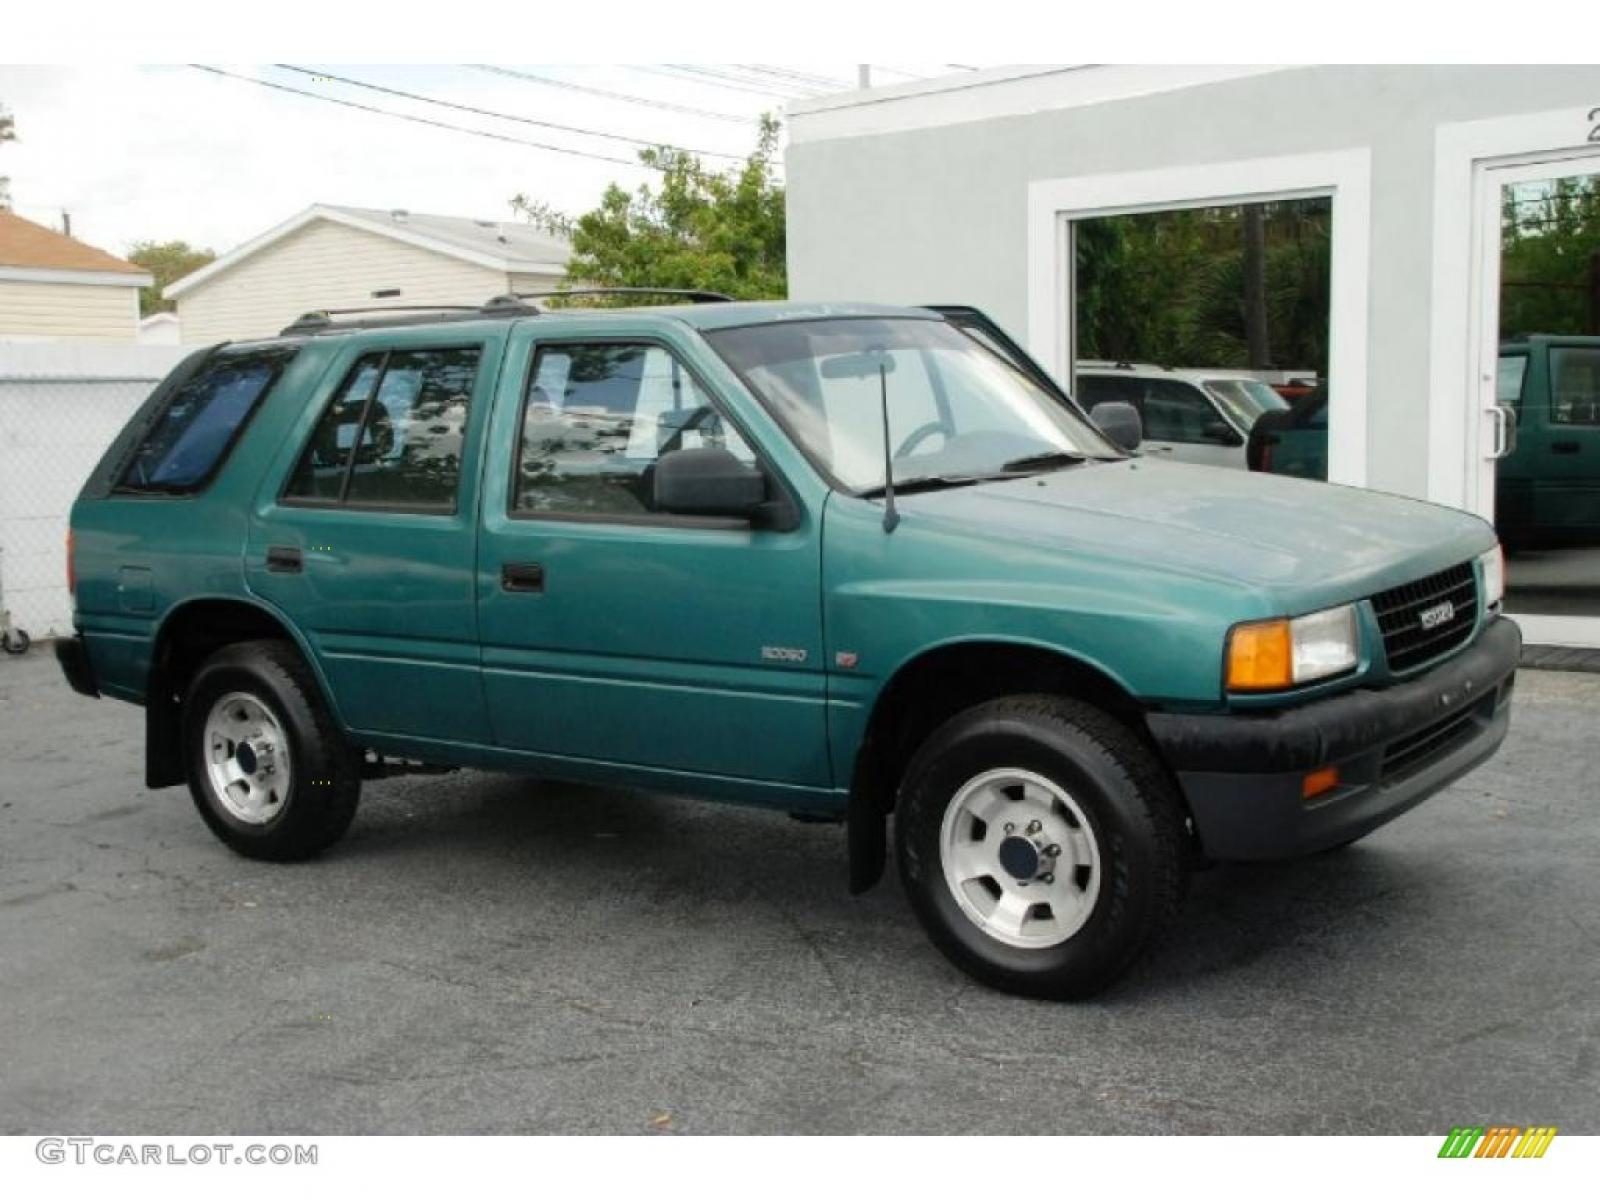 1995 isuzu rodeo information and photos zombiedrive